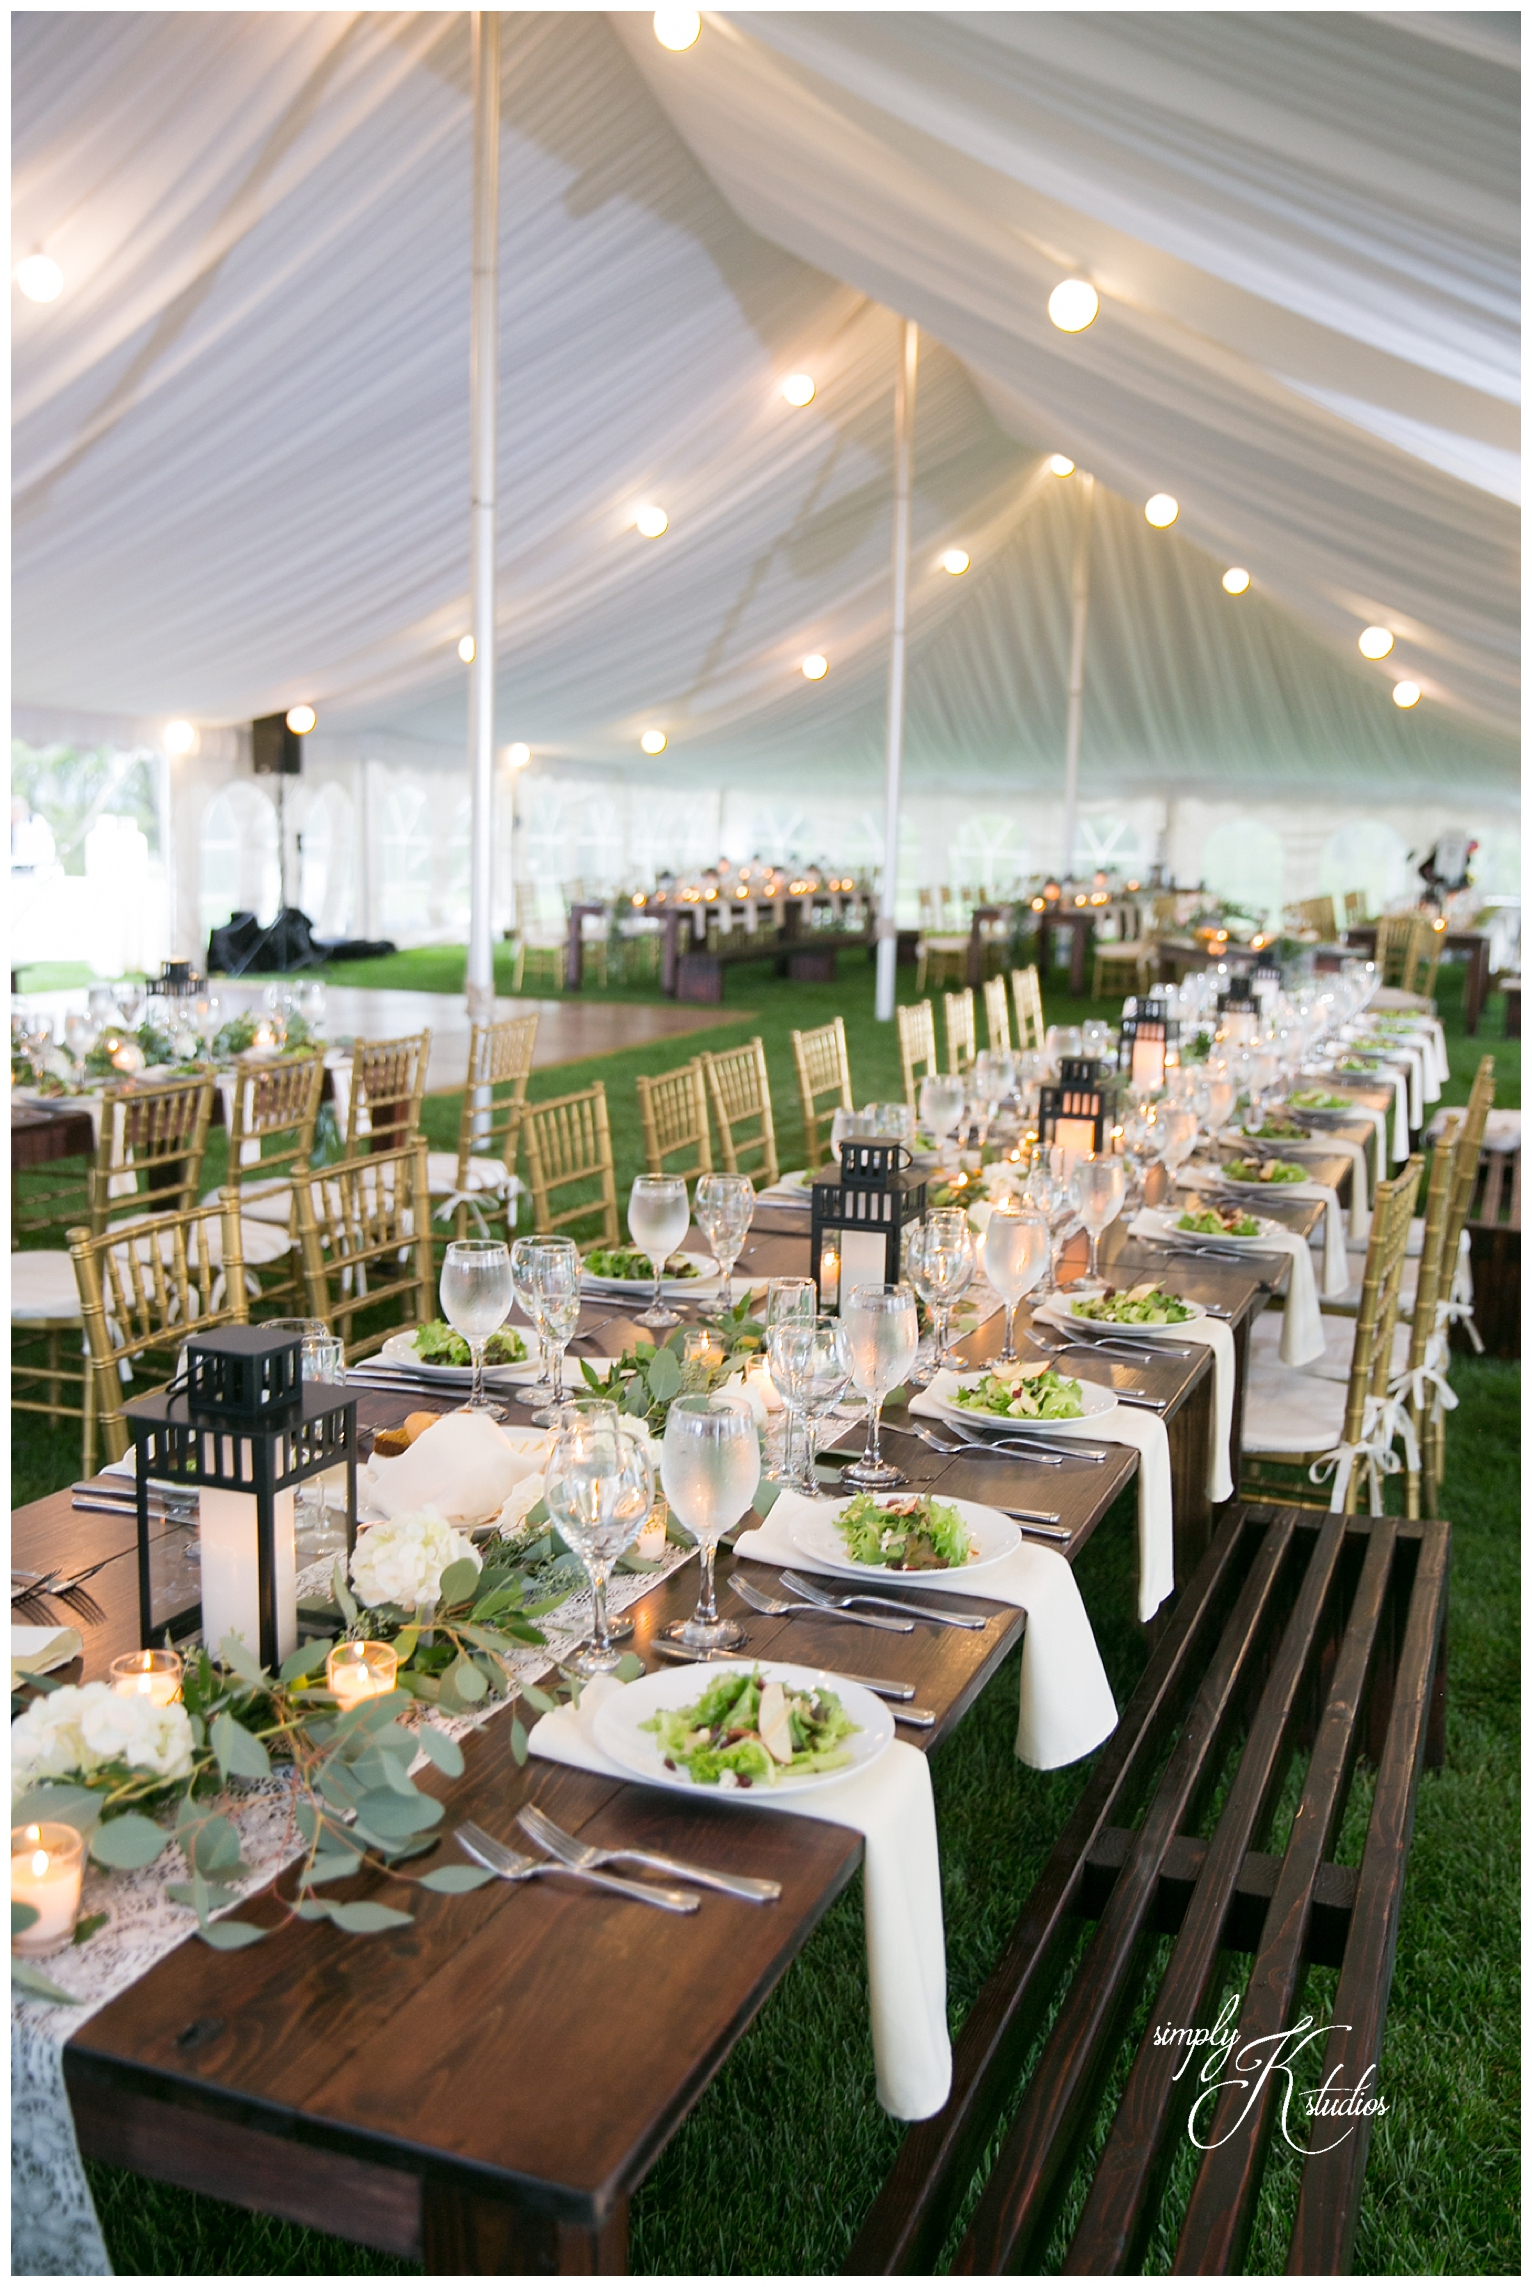 Wedding Planners for a Backyard Wedding in CT.jpg